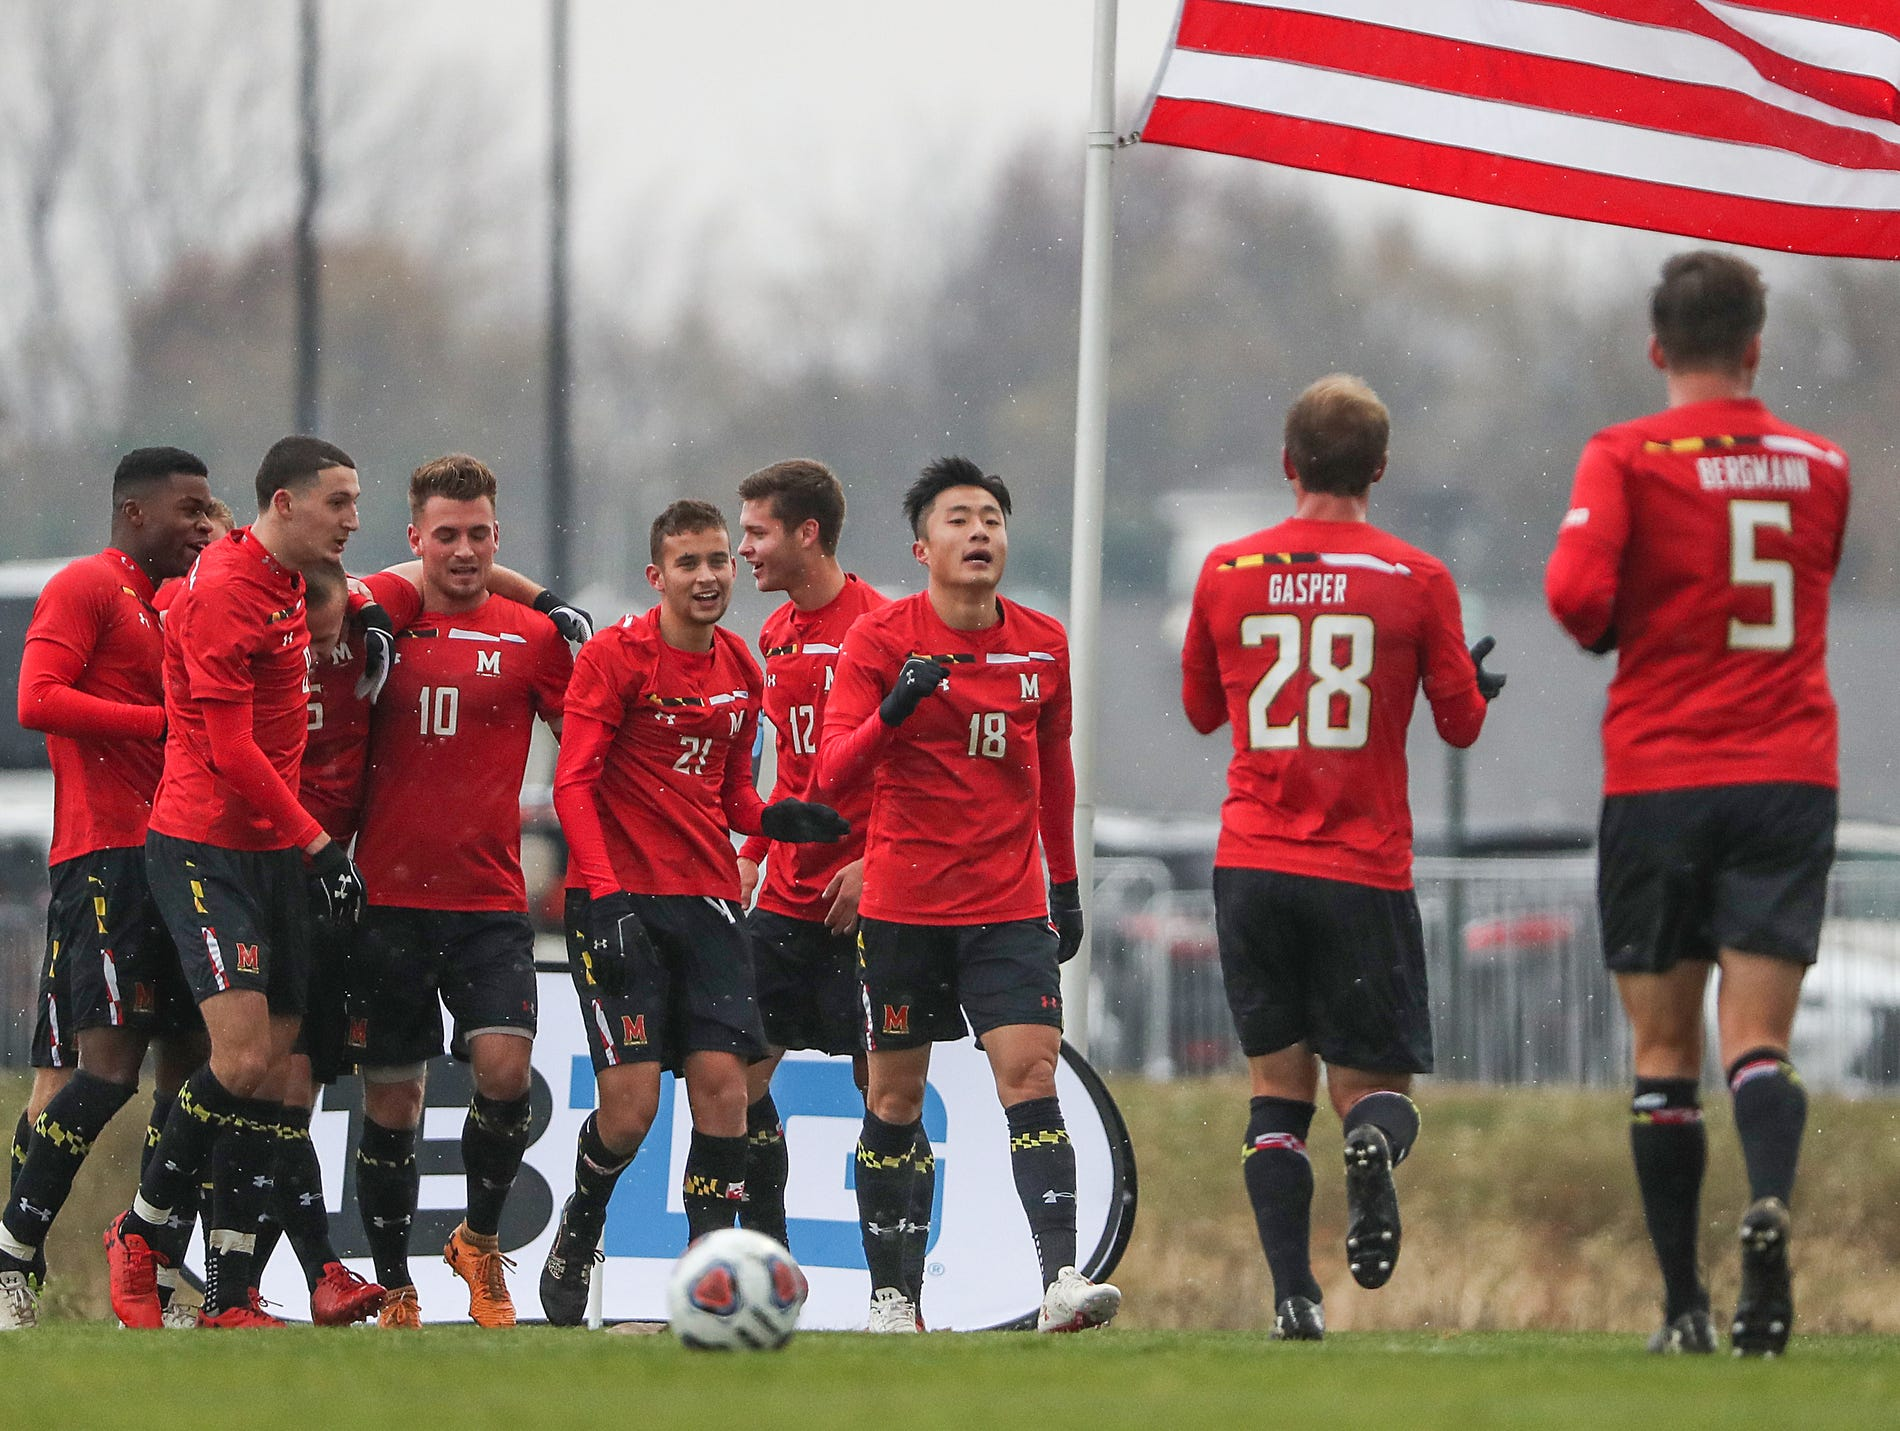 The Maryland Terrapins celebrate a goal by defender Ben Di Rosa (25) during the second half of Big Ten semifinals at Grand Park in Westfield, Ind., Friday, Nov. 9, 2018. Indiana and Maryland tied 1-1, with the Hoosiers advancing in penalty kicks, 4-3.